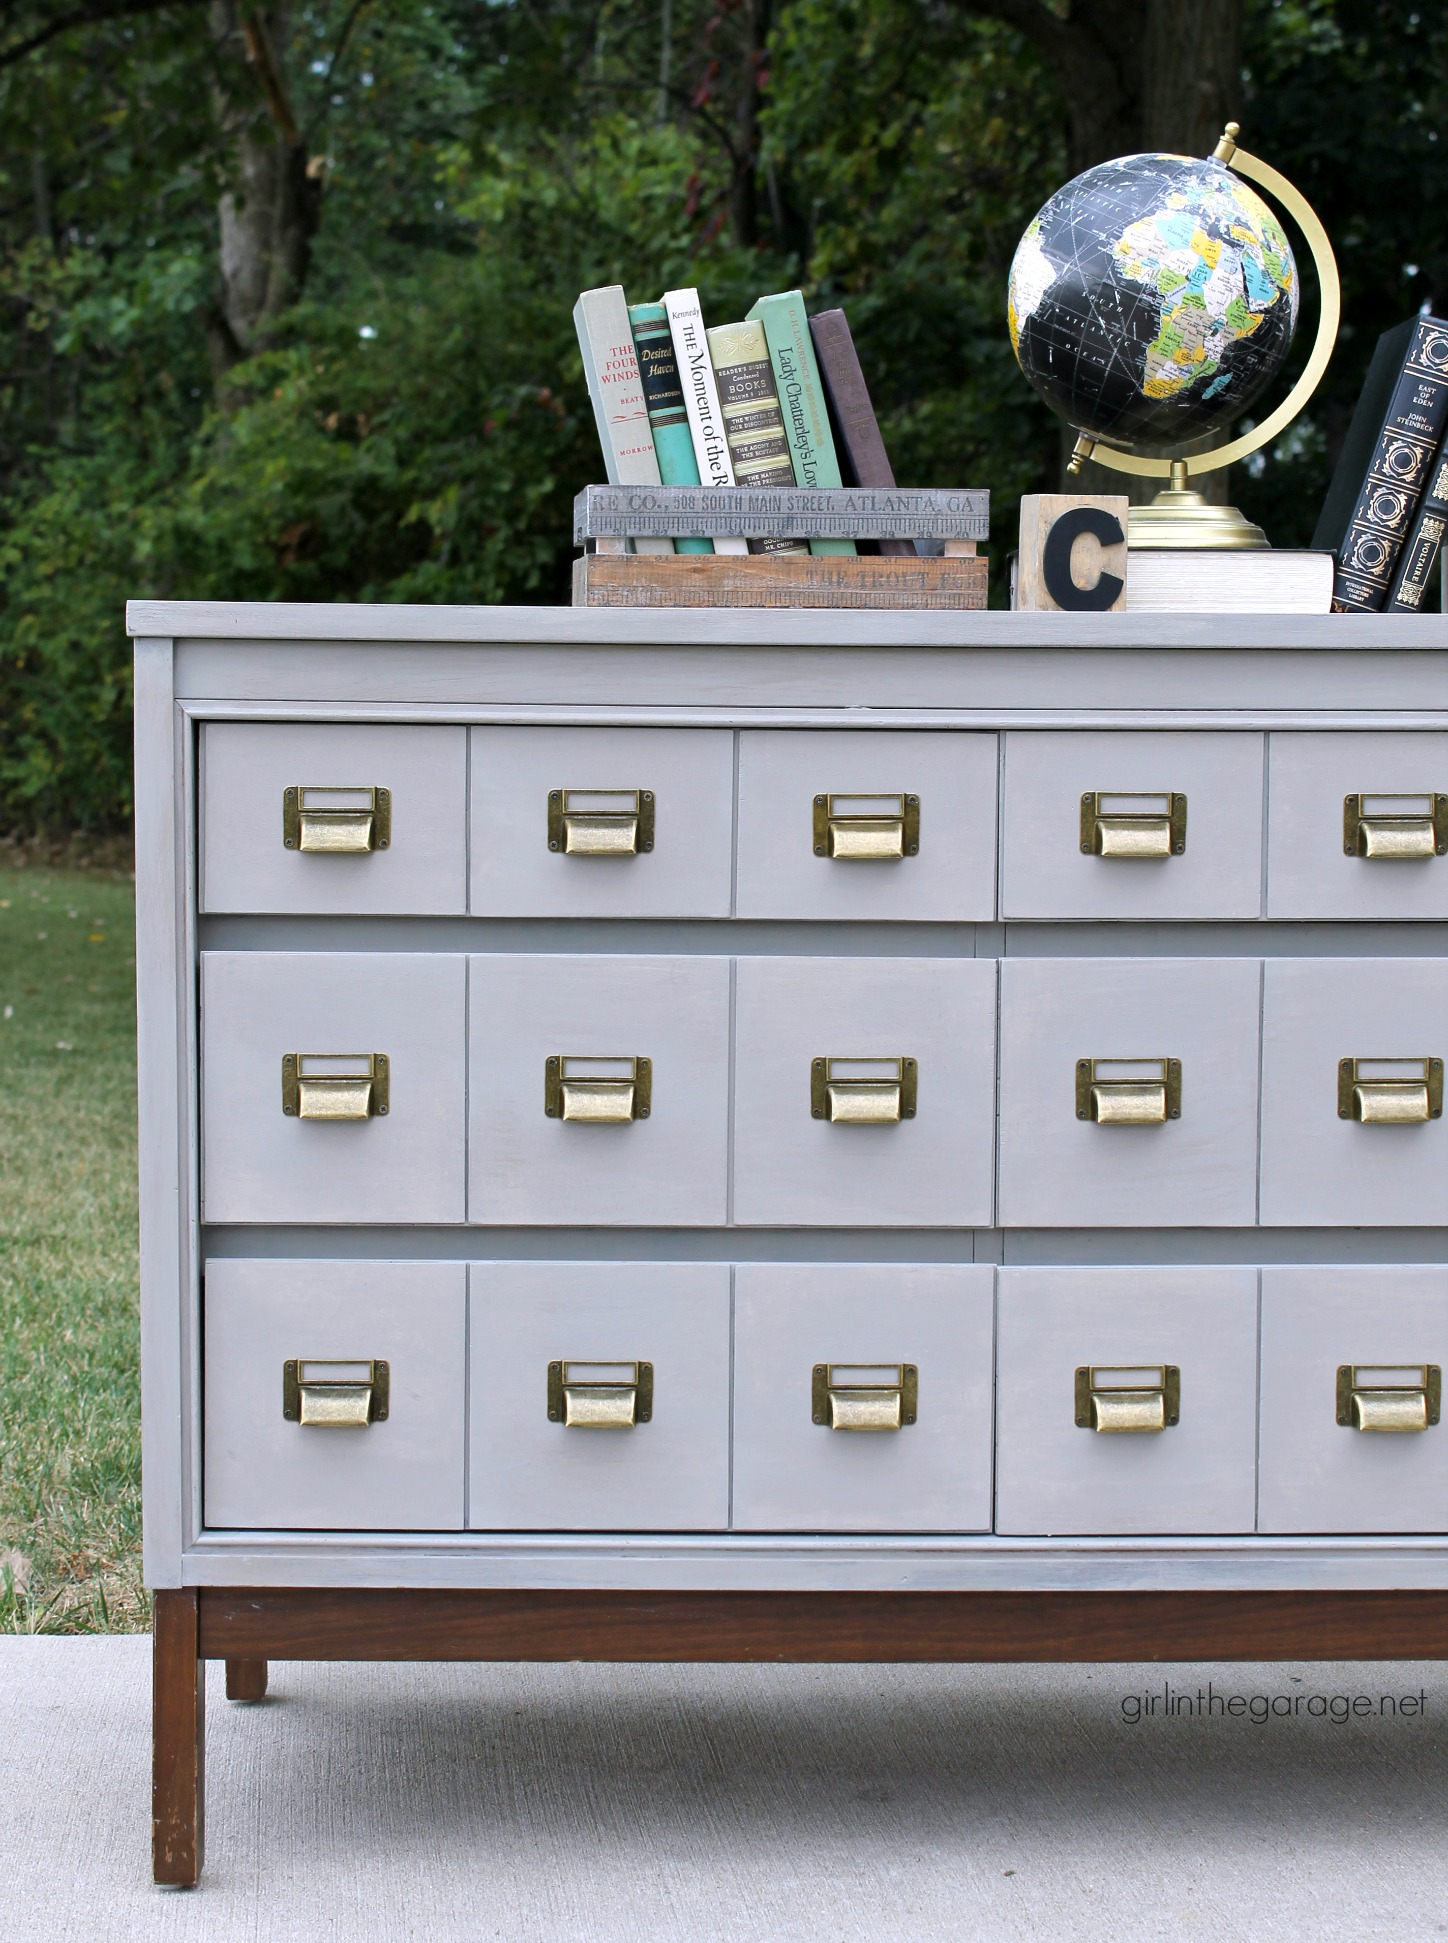 DIY Card Catalog Dresser - Girl in the Garage